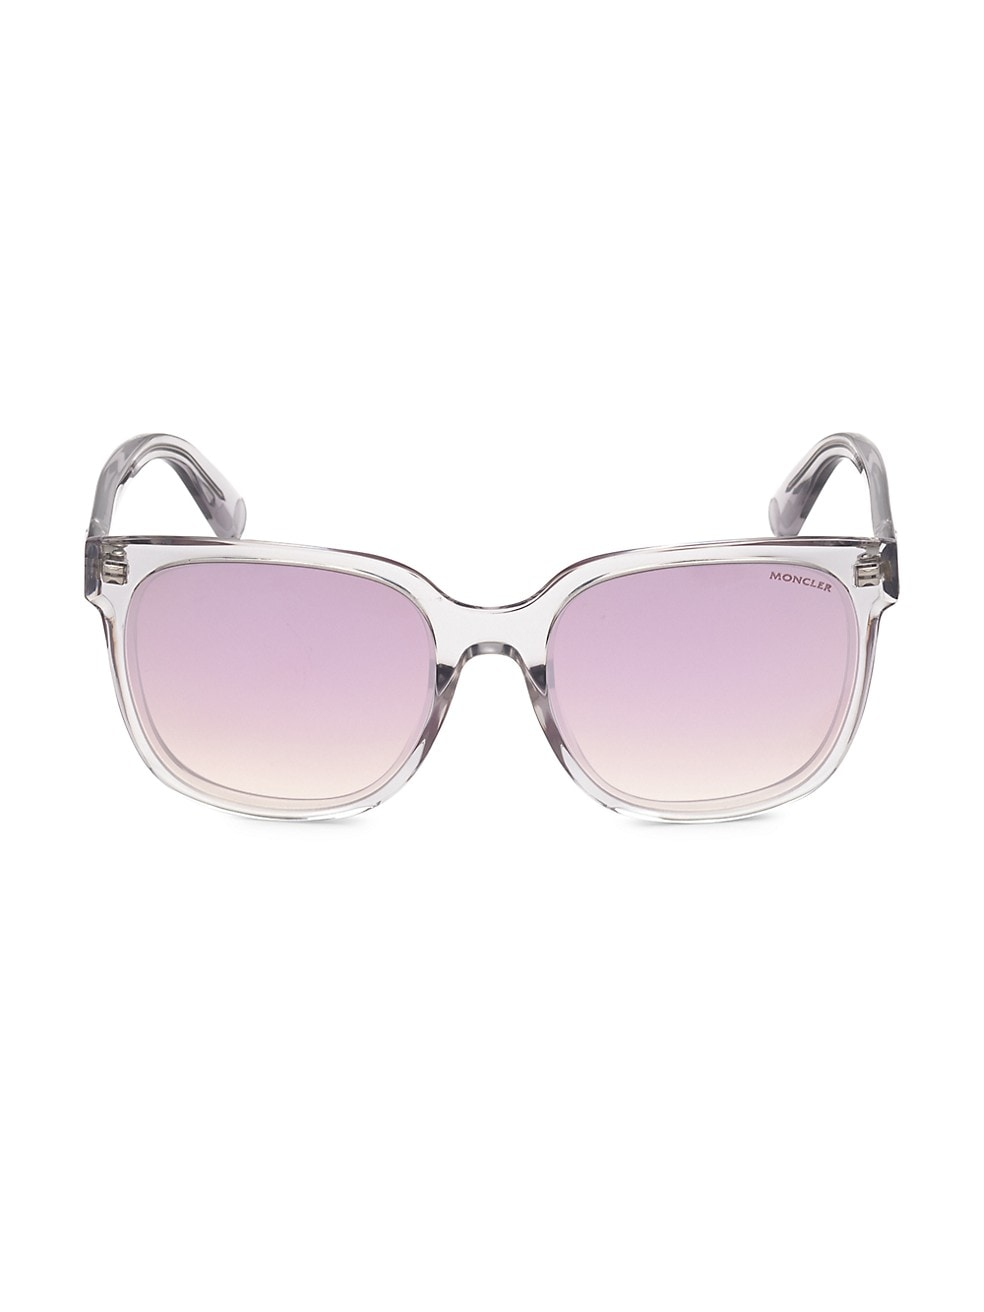 55MM Square Sunglasses by Saks Fifth Avenue, available on saksfifthavenue.com for $355 Alessandra Ambrosio Sunglasses Exact Product